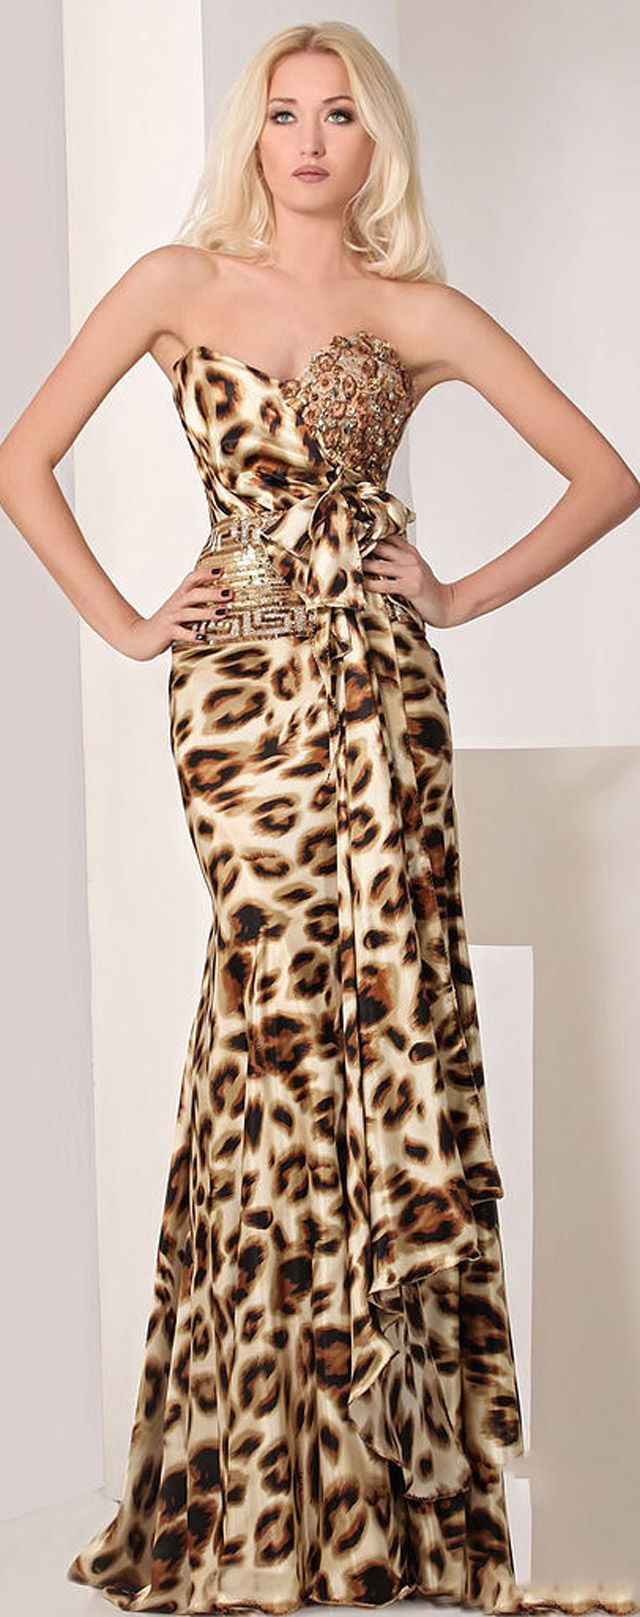 Long dresses for summer wedding  Glorious dress  Leopard Print Fashion  AnimalCheetah  Pinterest